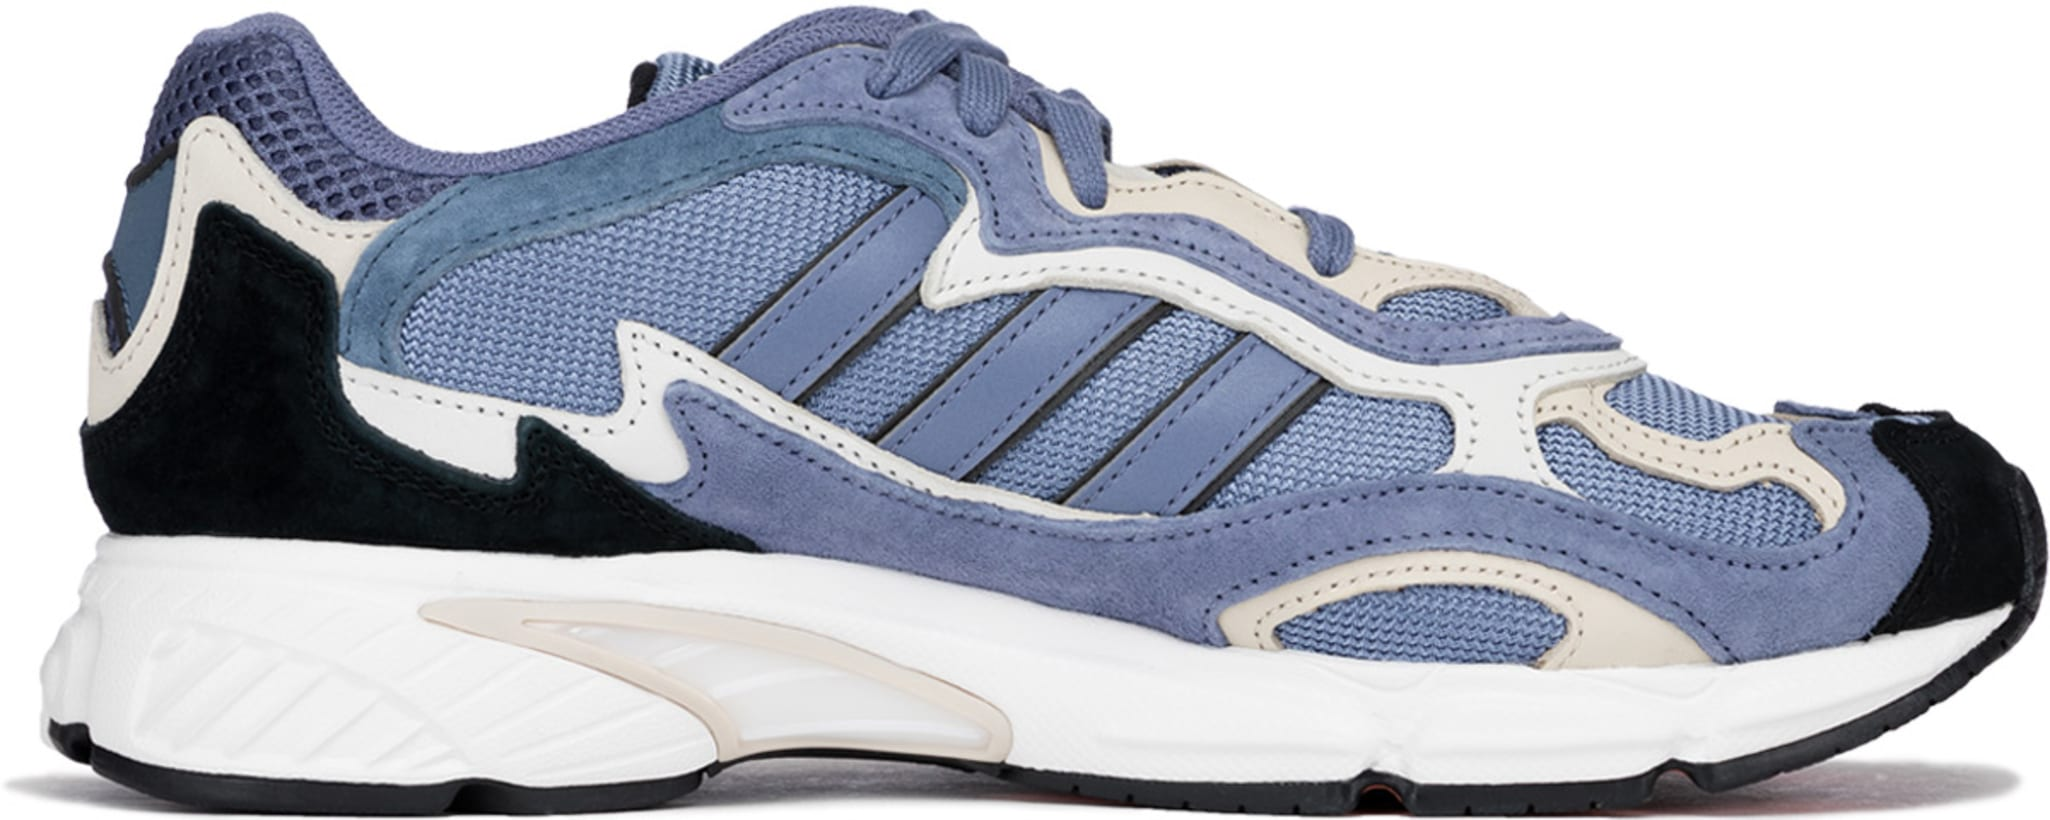 115ae6ce3d8 adidas Originals  Temper Run - Raw Indigo Raw Indigo Core Black ...